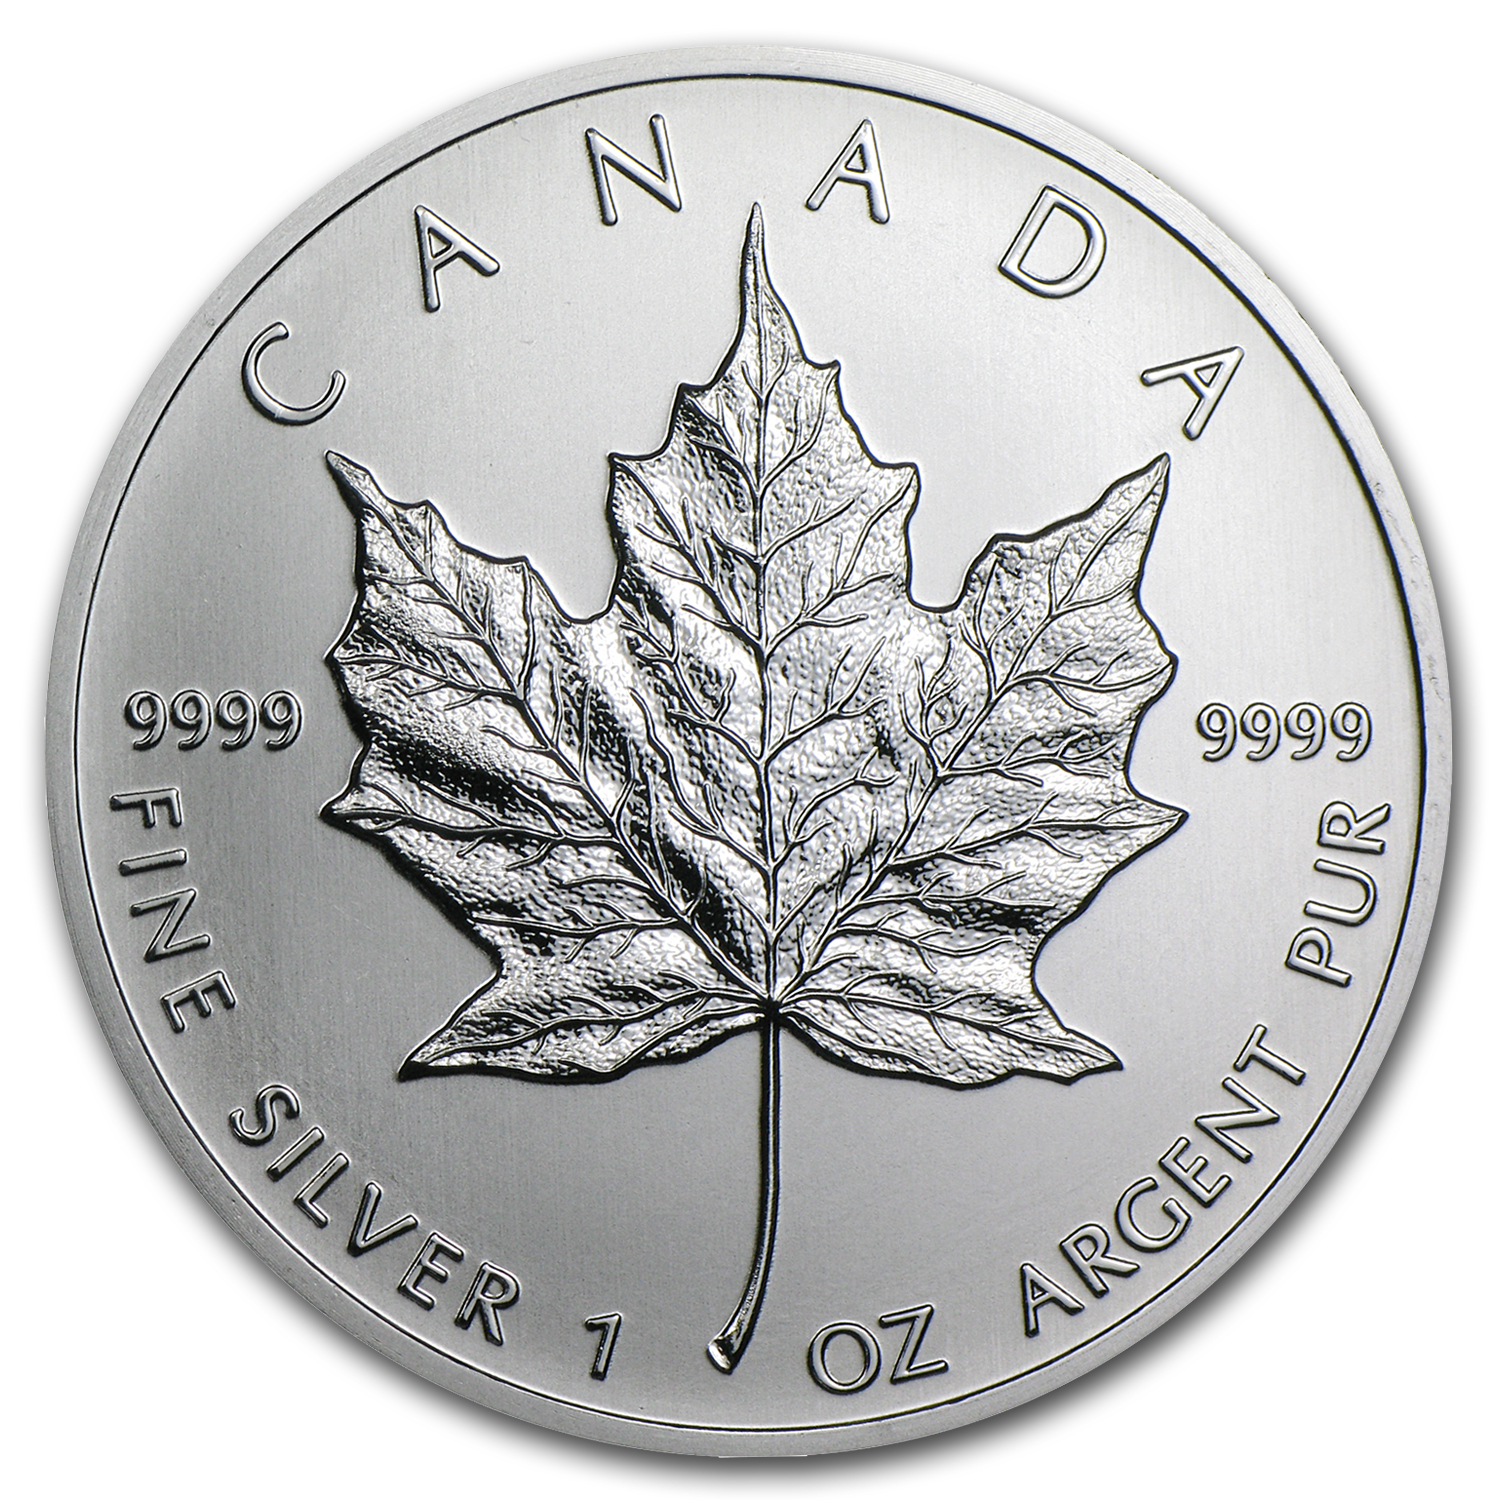 2013 Canada 1 oz Silver Maple Leaf (25-Coin MintDirect® Tube)